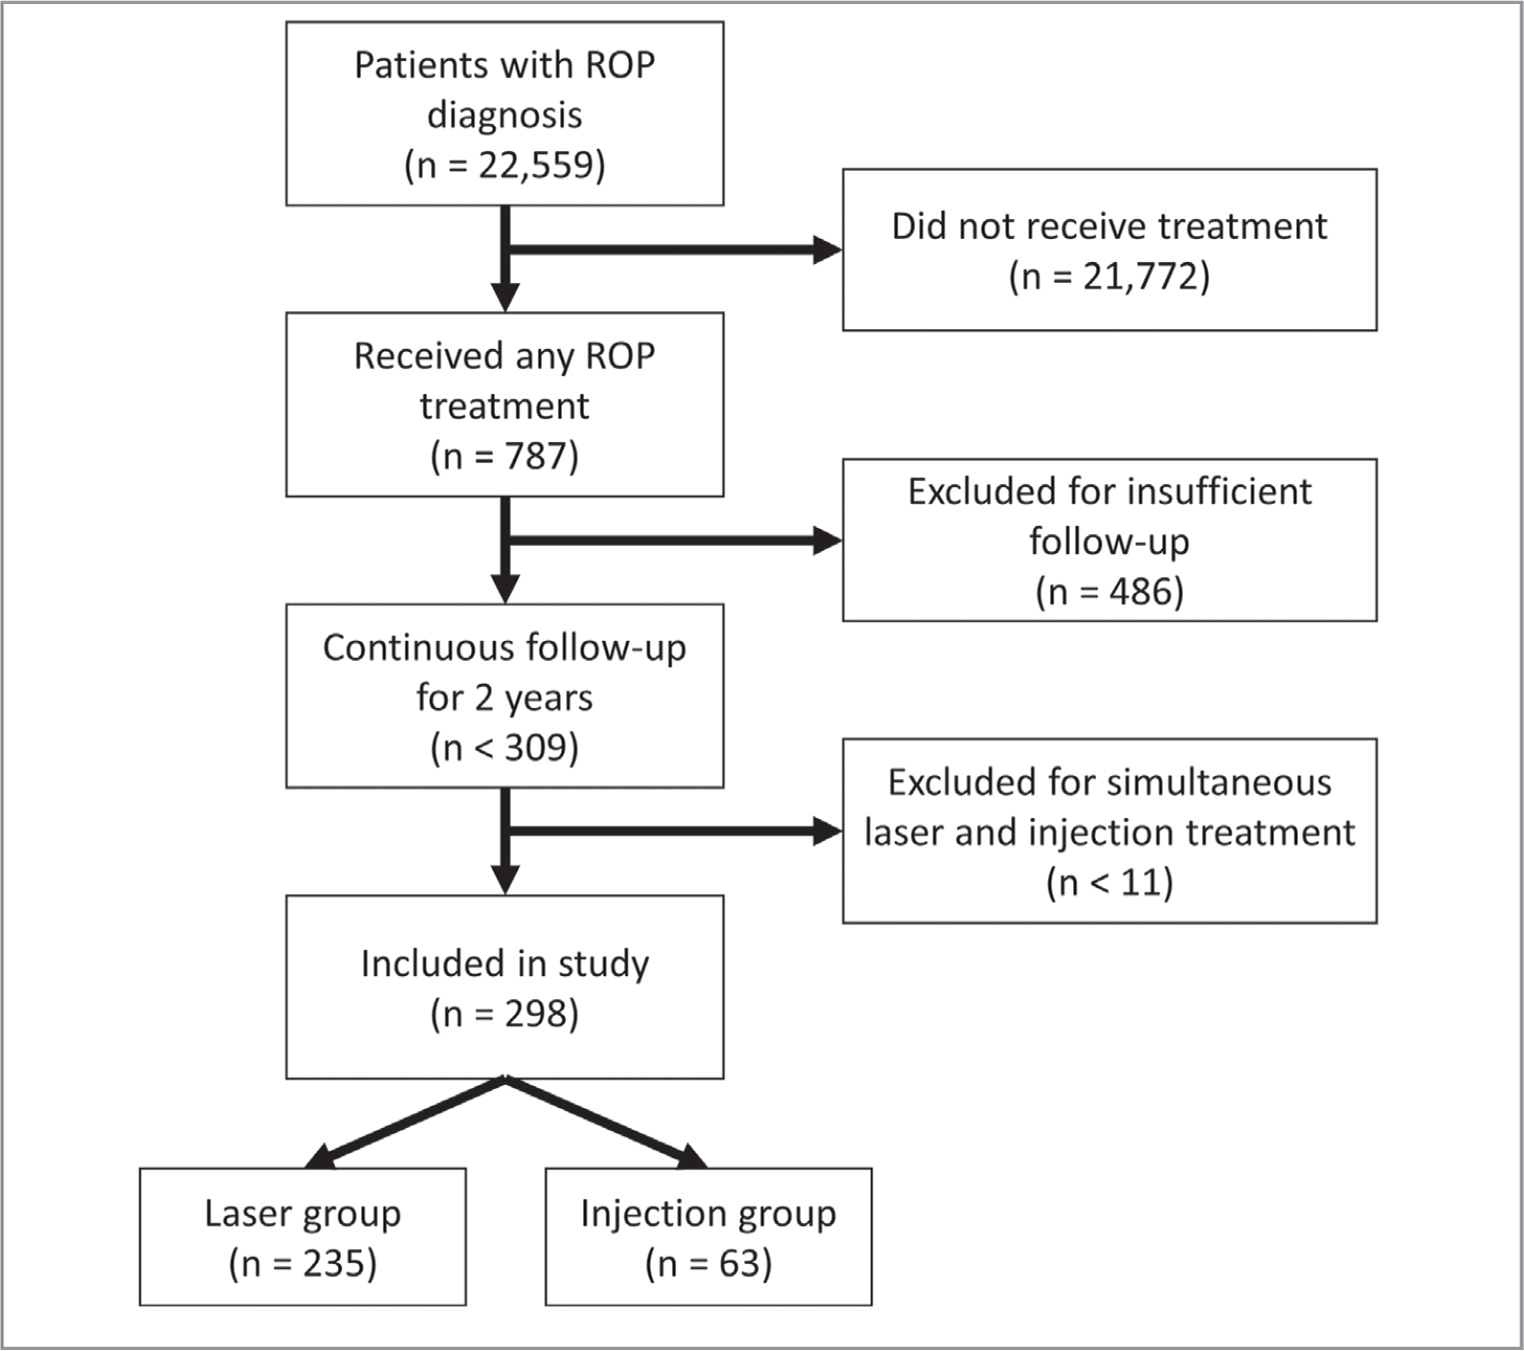 Infants in the MarketScan Research Database with ICD codes indicative of retinopathy of prematurity (ROP). Infants were included in this study if CPT codes indicated treatment with laser or injection. Treated infants were excluded if insurance coverage was not continuous during the 2 years following treatment, or if they received simultaneous laser and injection procedures..